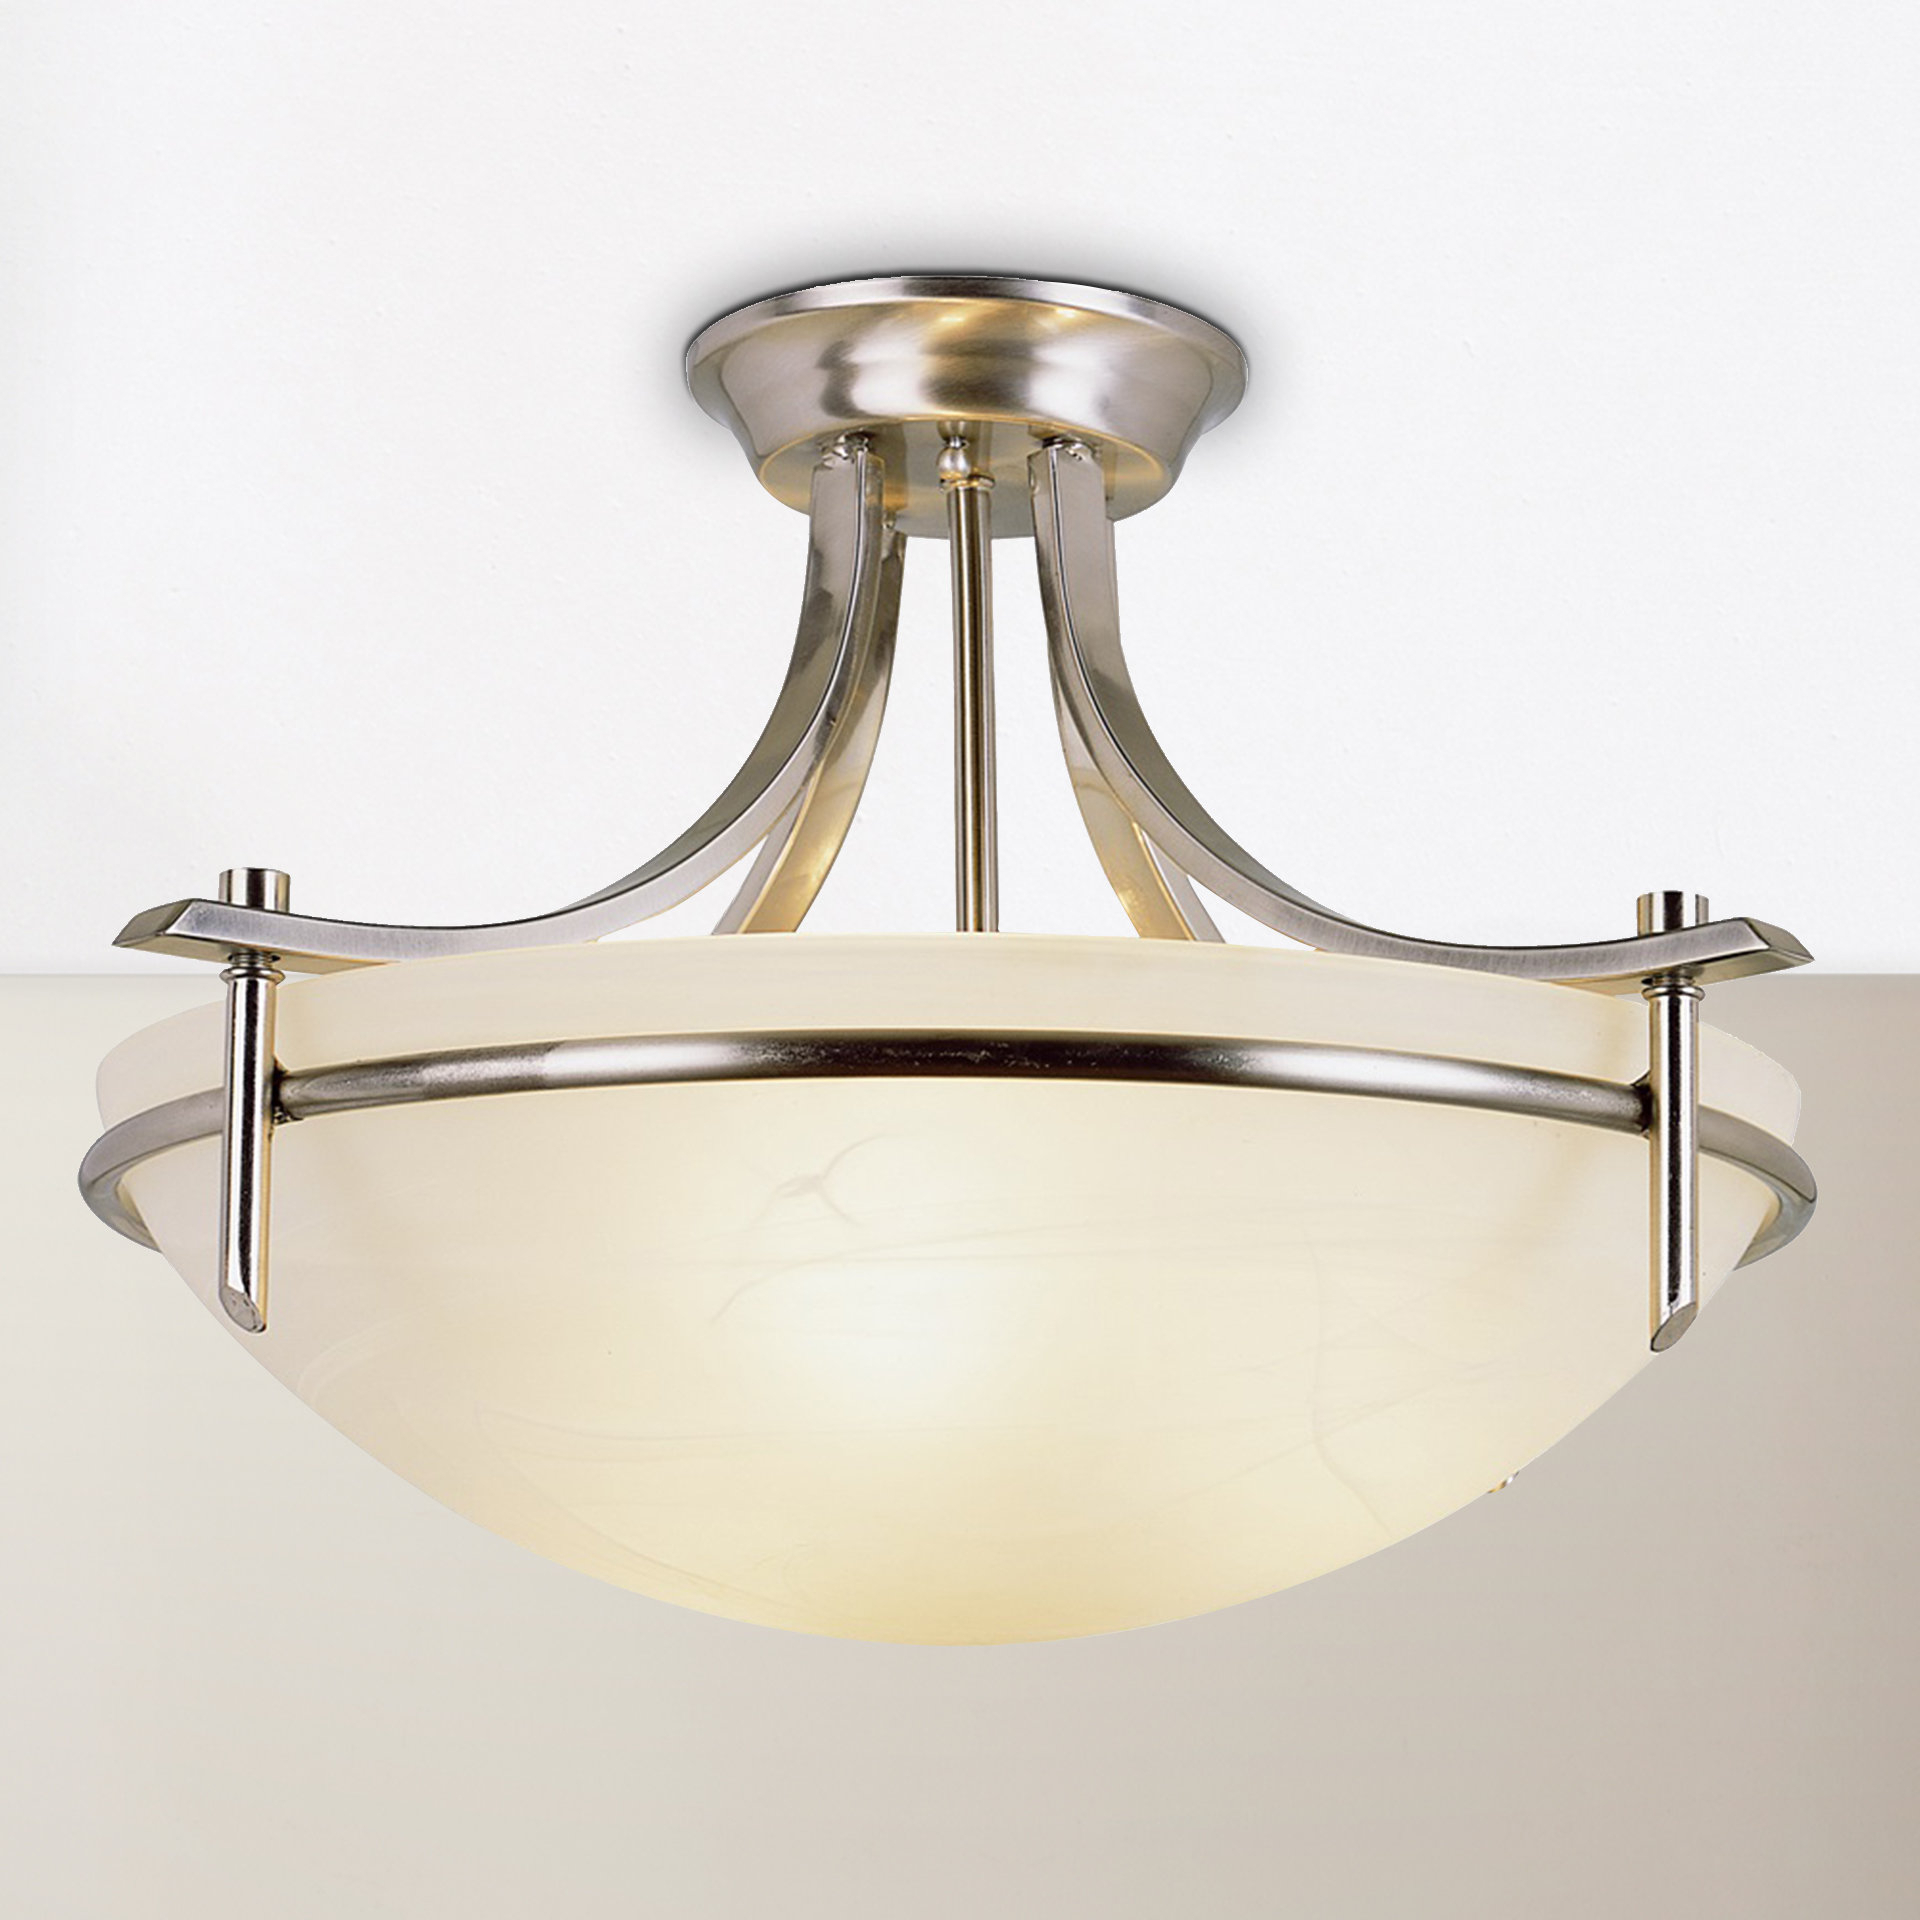 Warner Robins 3 Light Lantern Pendants For Most Up To Date Ferrante 3 Light Semi Flush Mount (View 17 of 20)